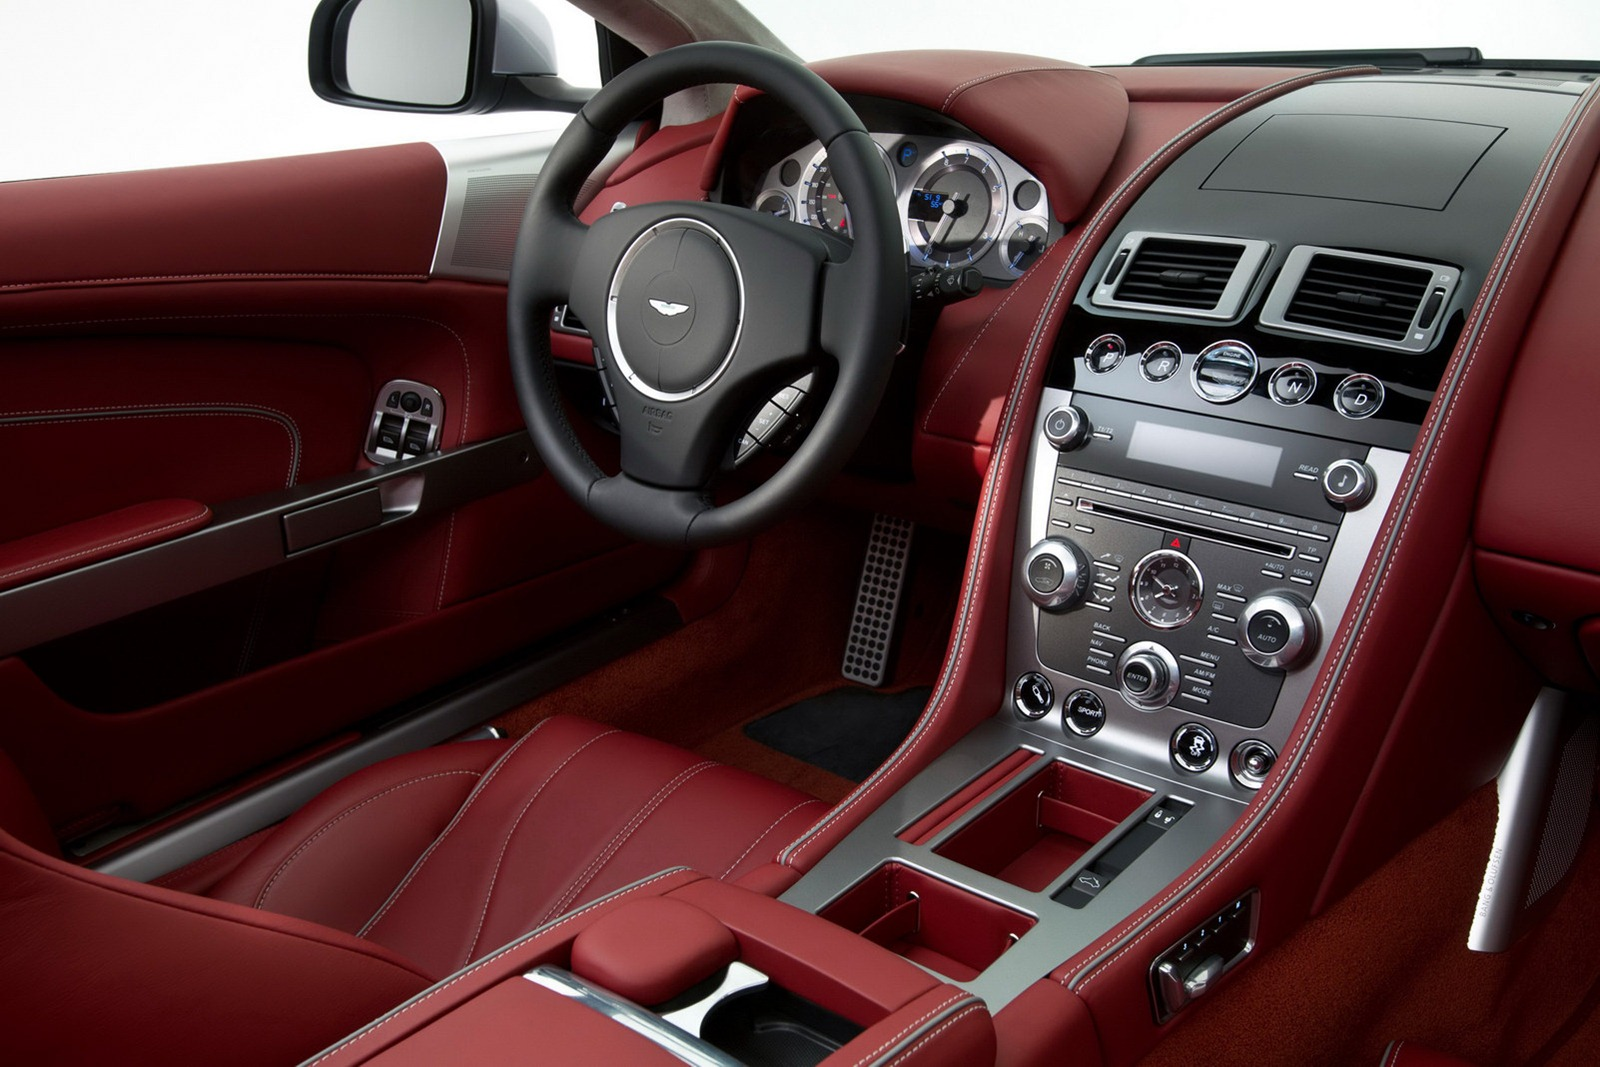 Aston_Martin_DB9_2013_Interior